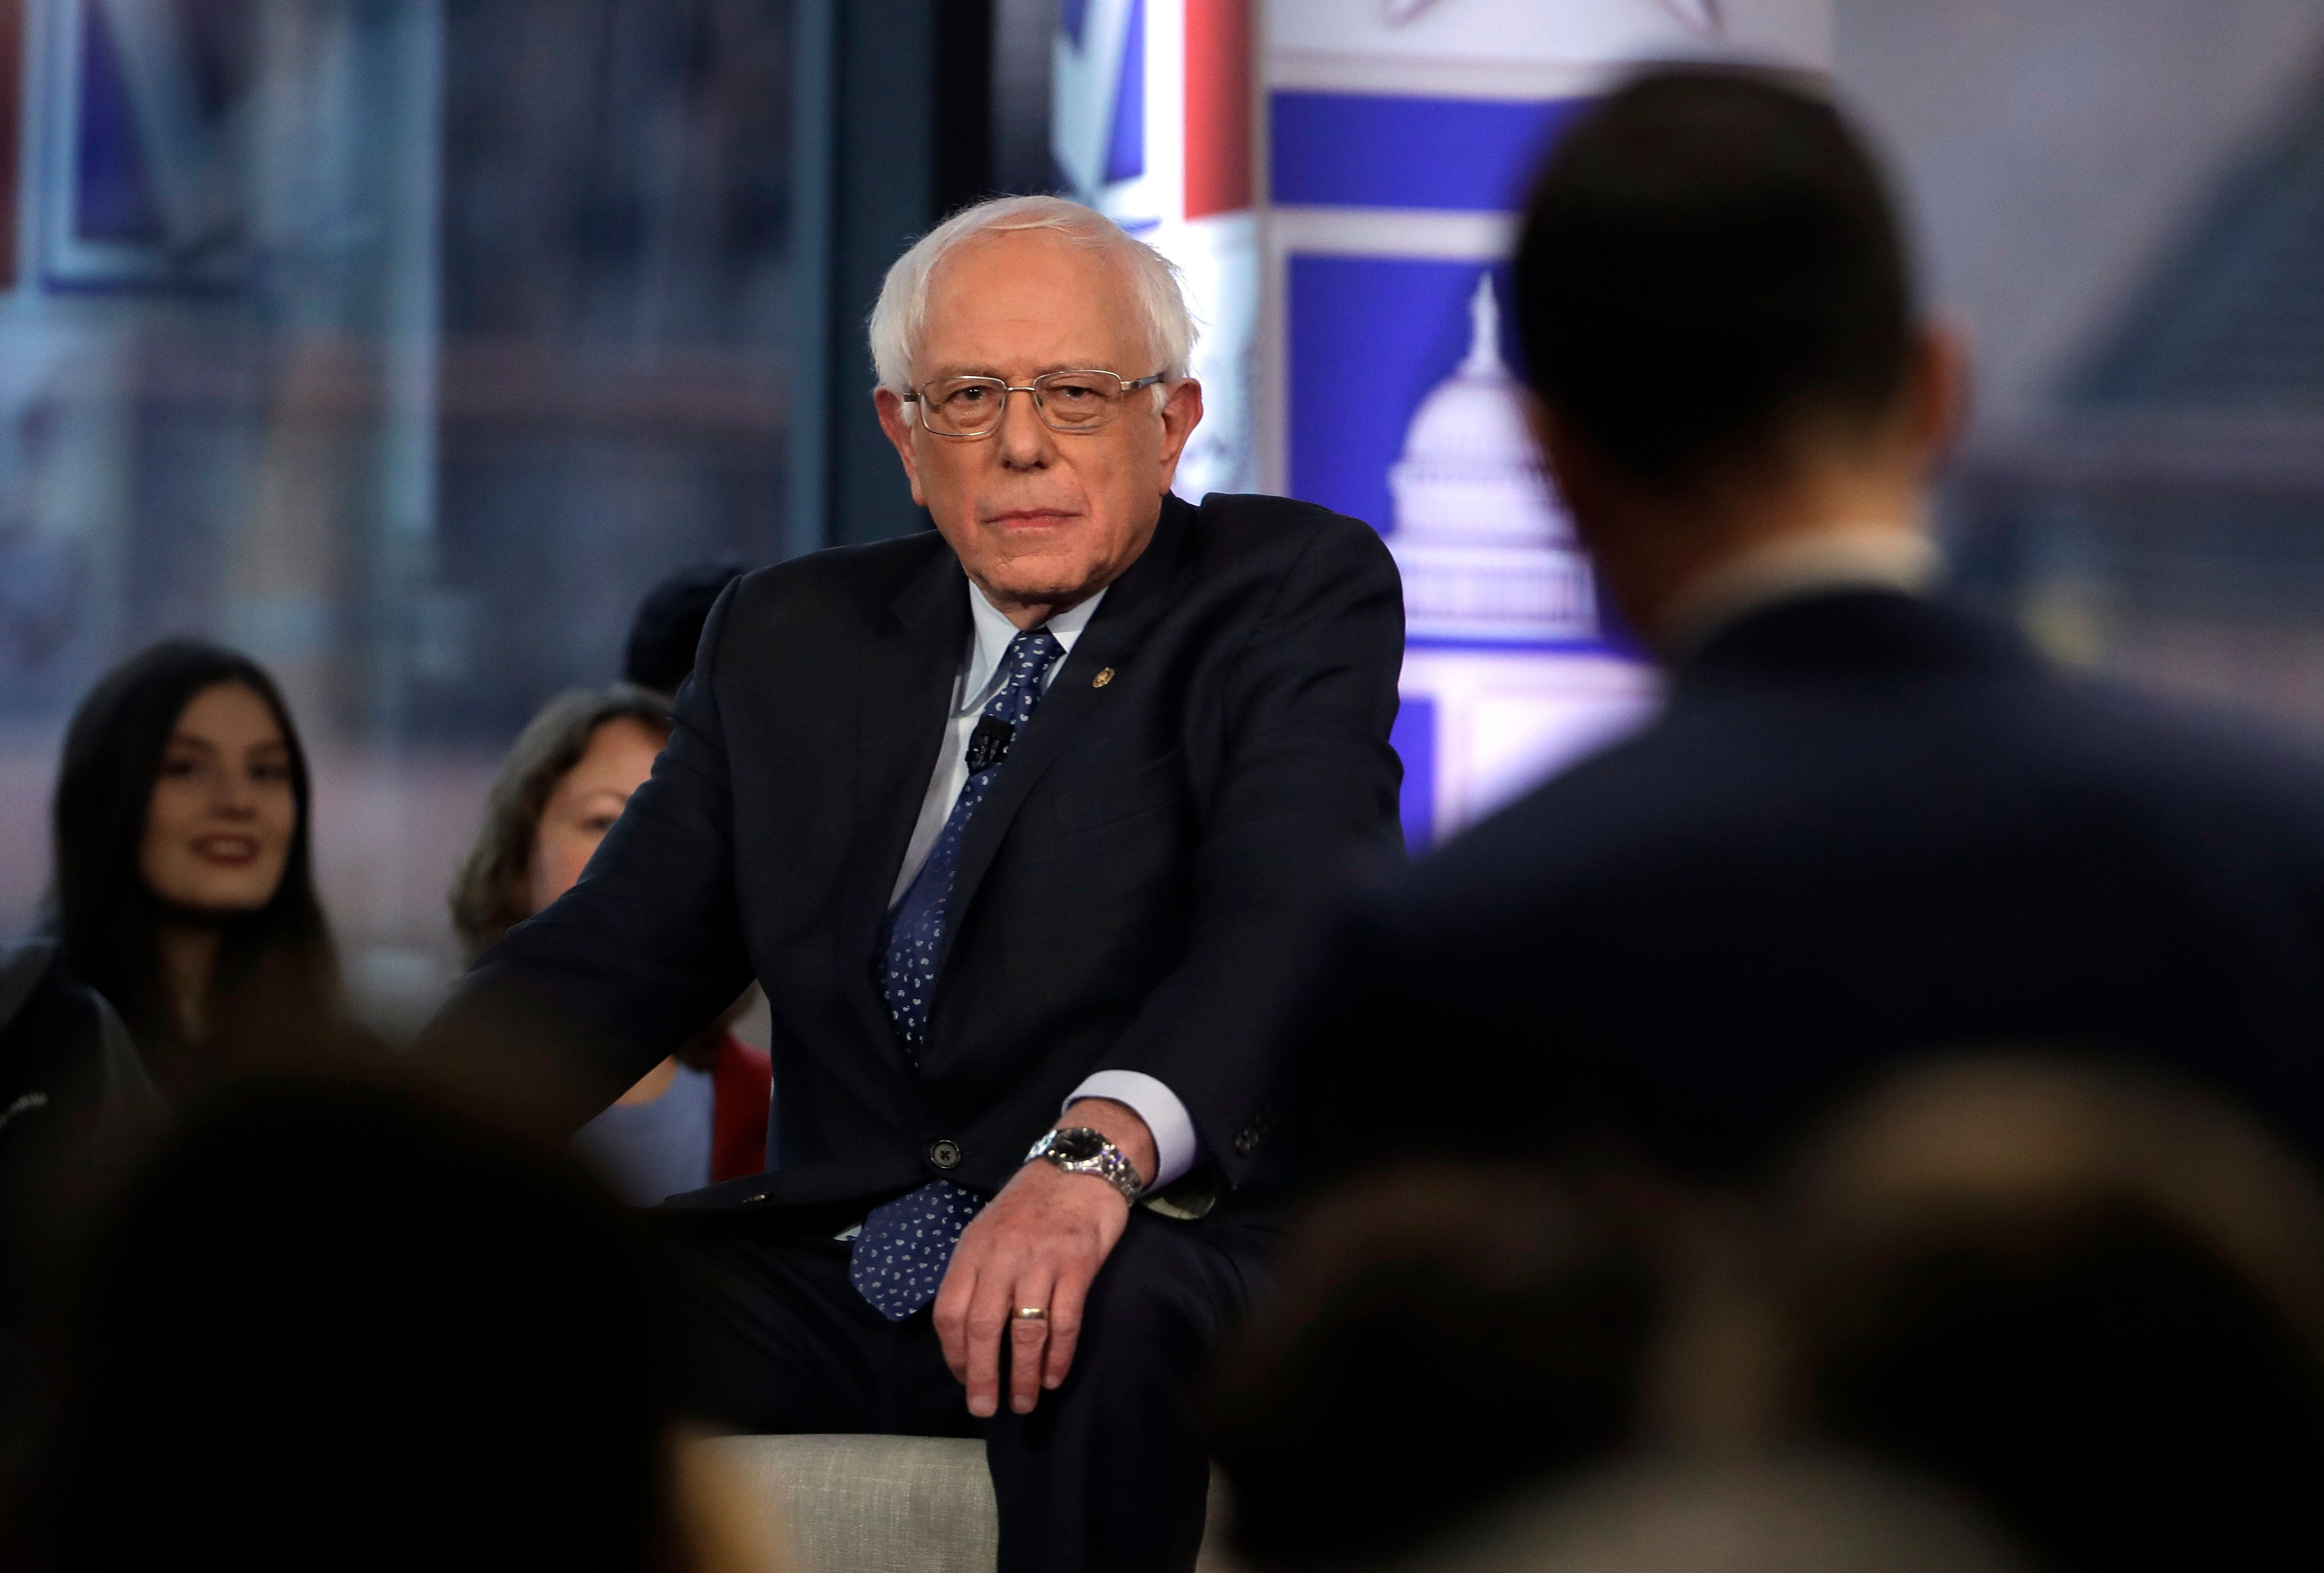 Sen. Bernie Sanders listens to a question from an audience member during a Fox News town-hall style event Monday April 15, 2019 in Bethlehem, Pa. (AP Photo/Matt Rourke)